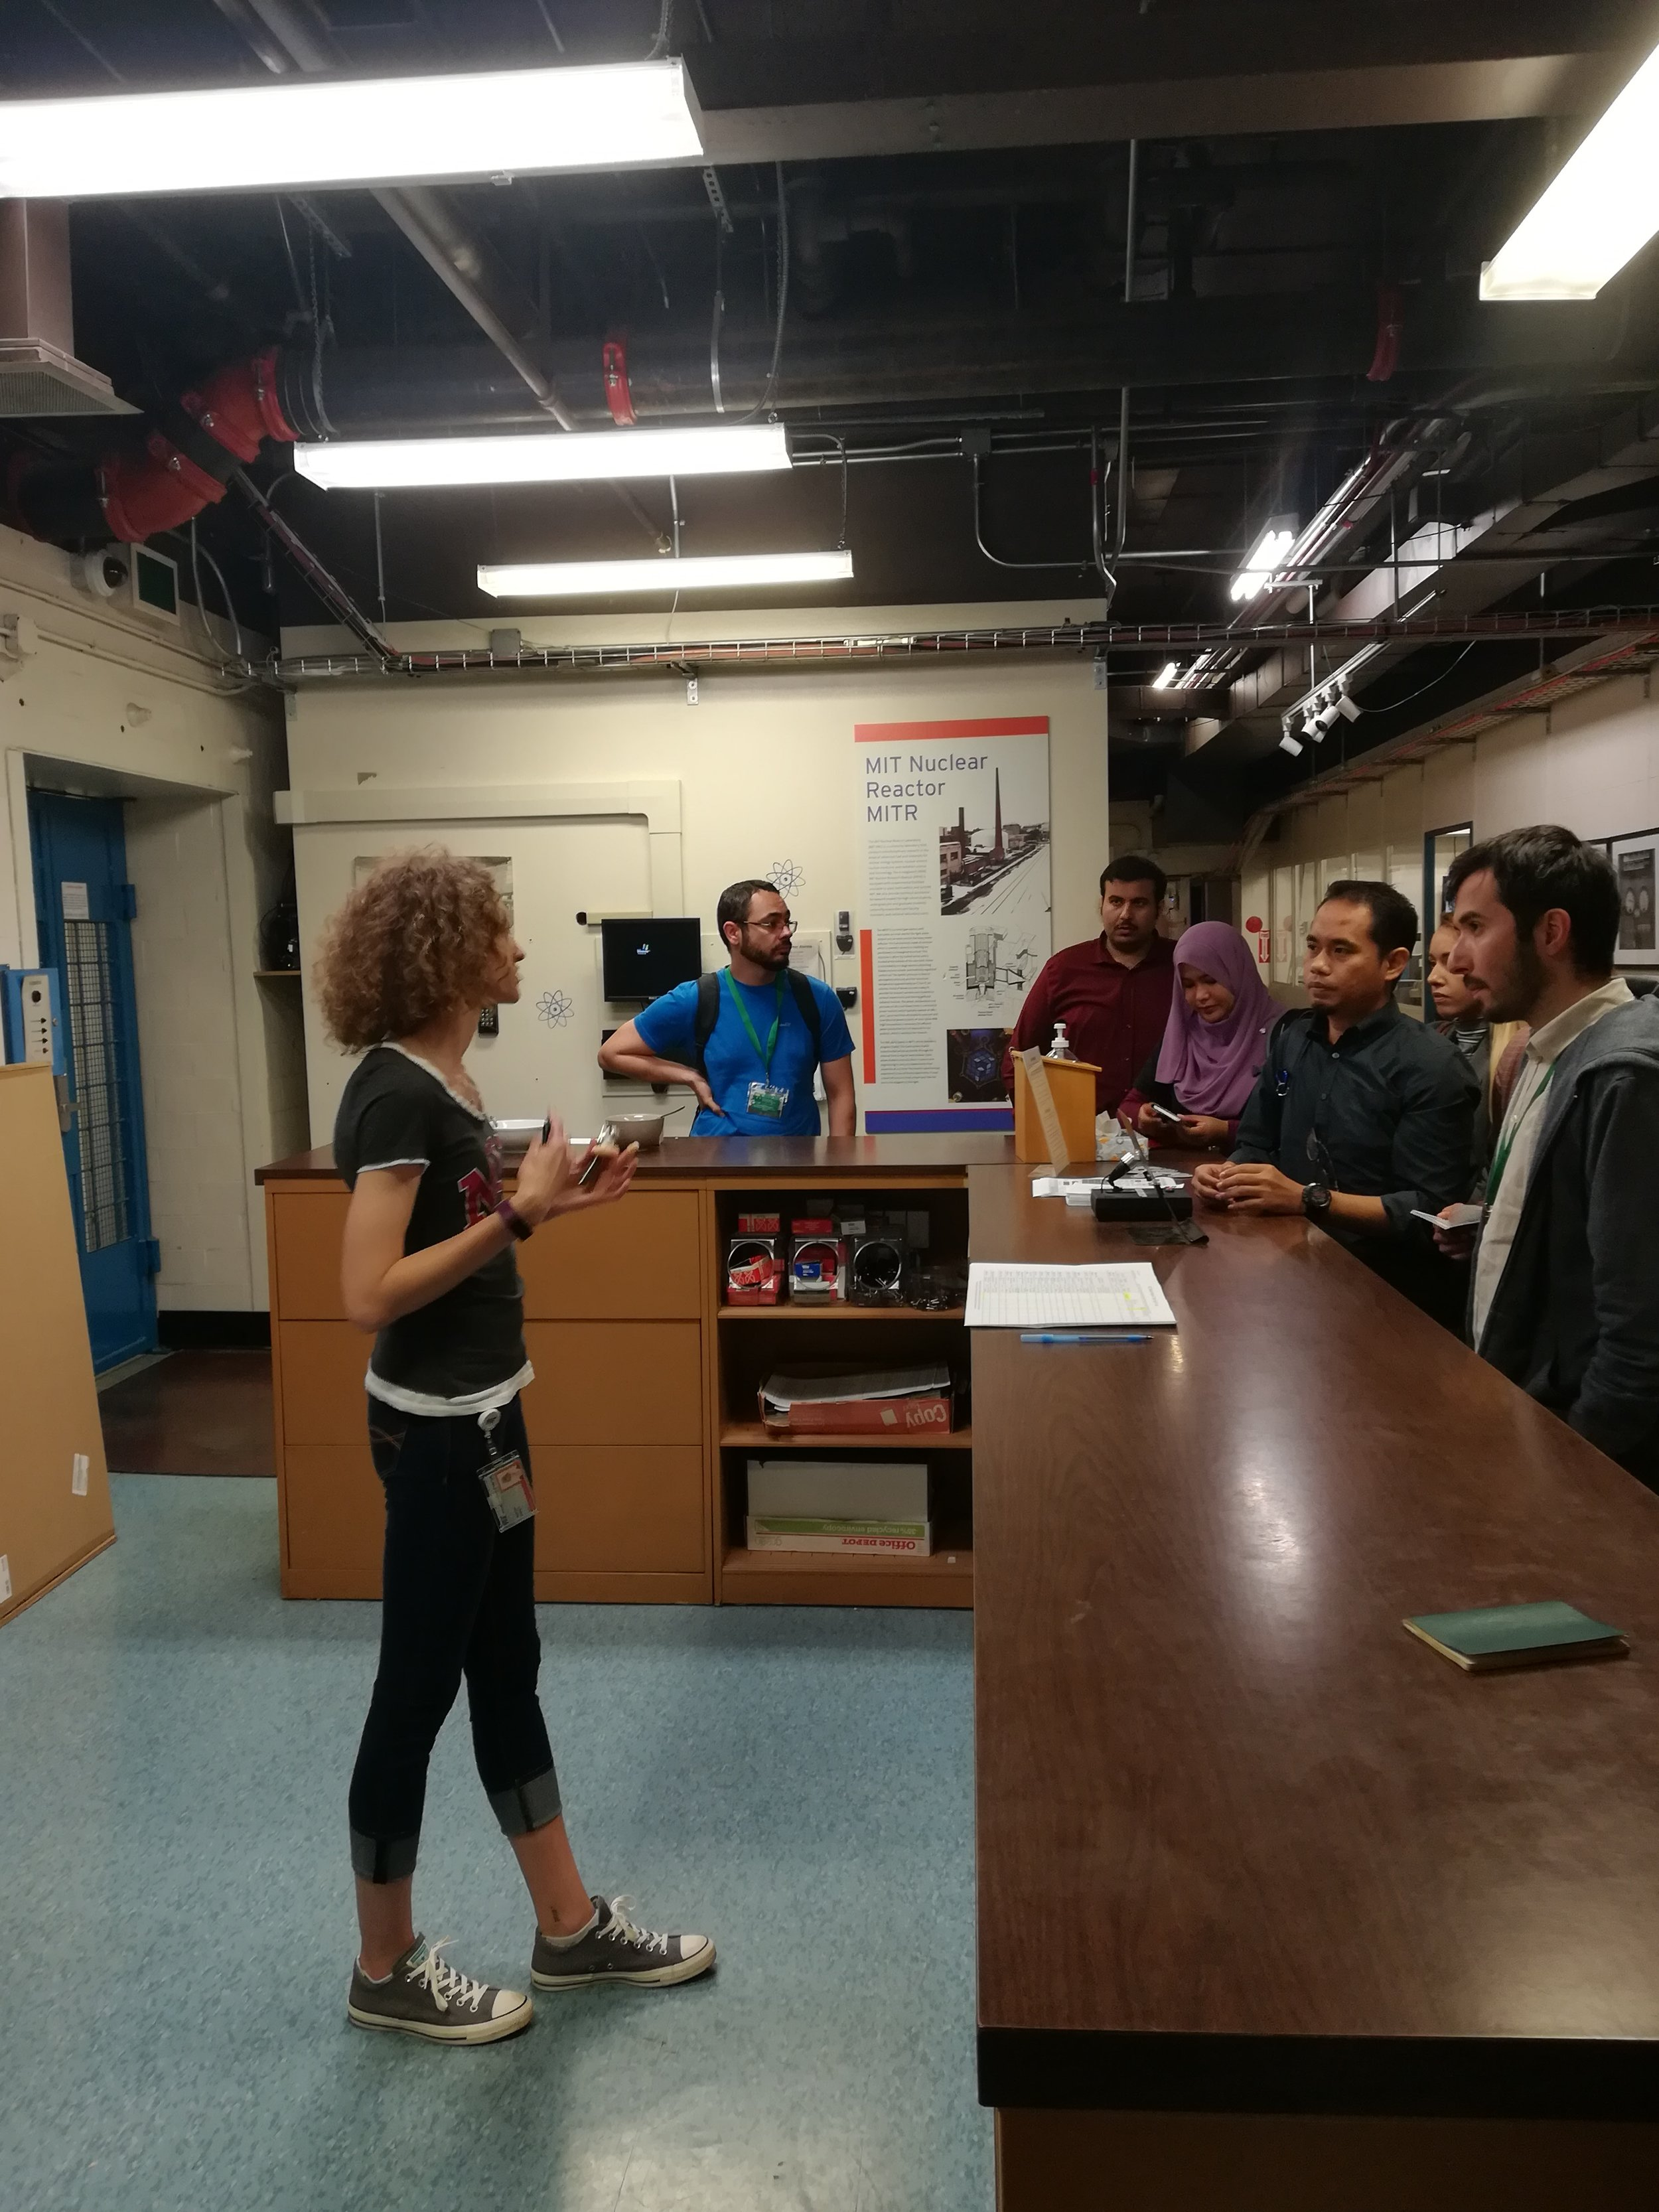 Visit to the Nuclear Reactor Lab at MIT